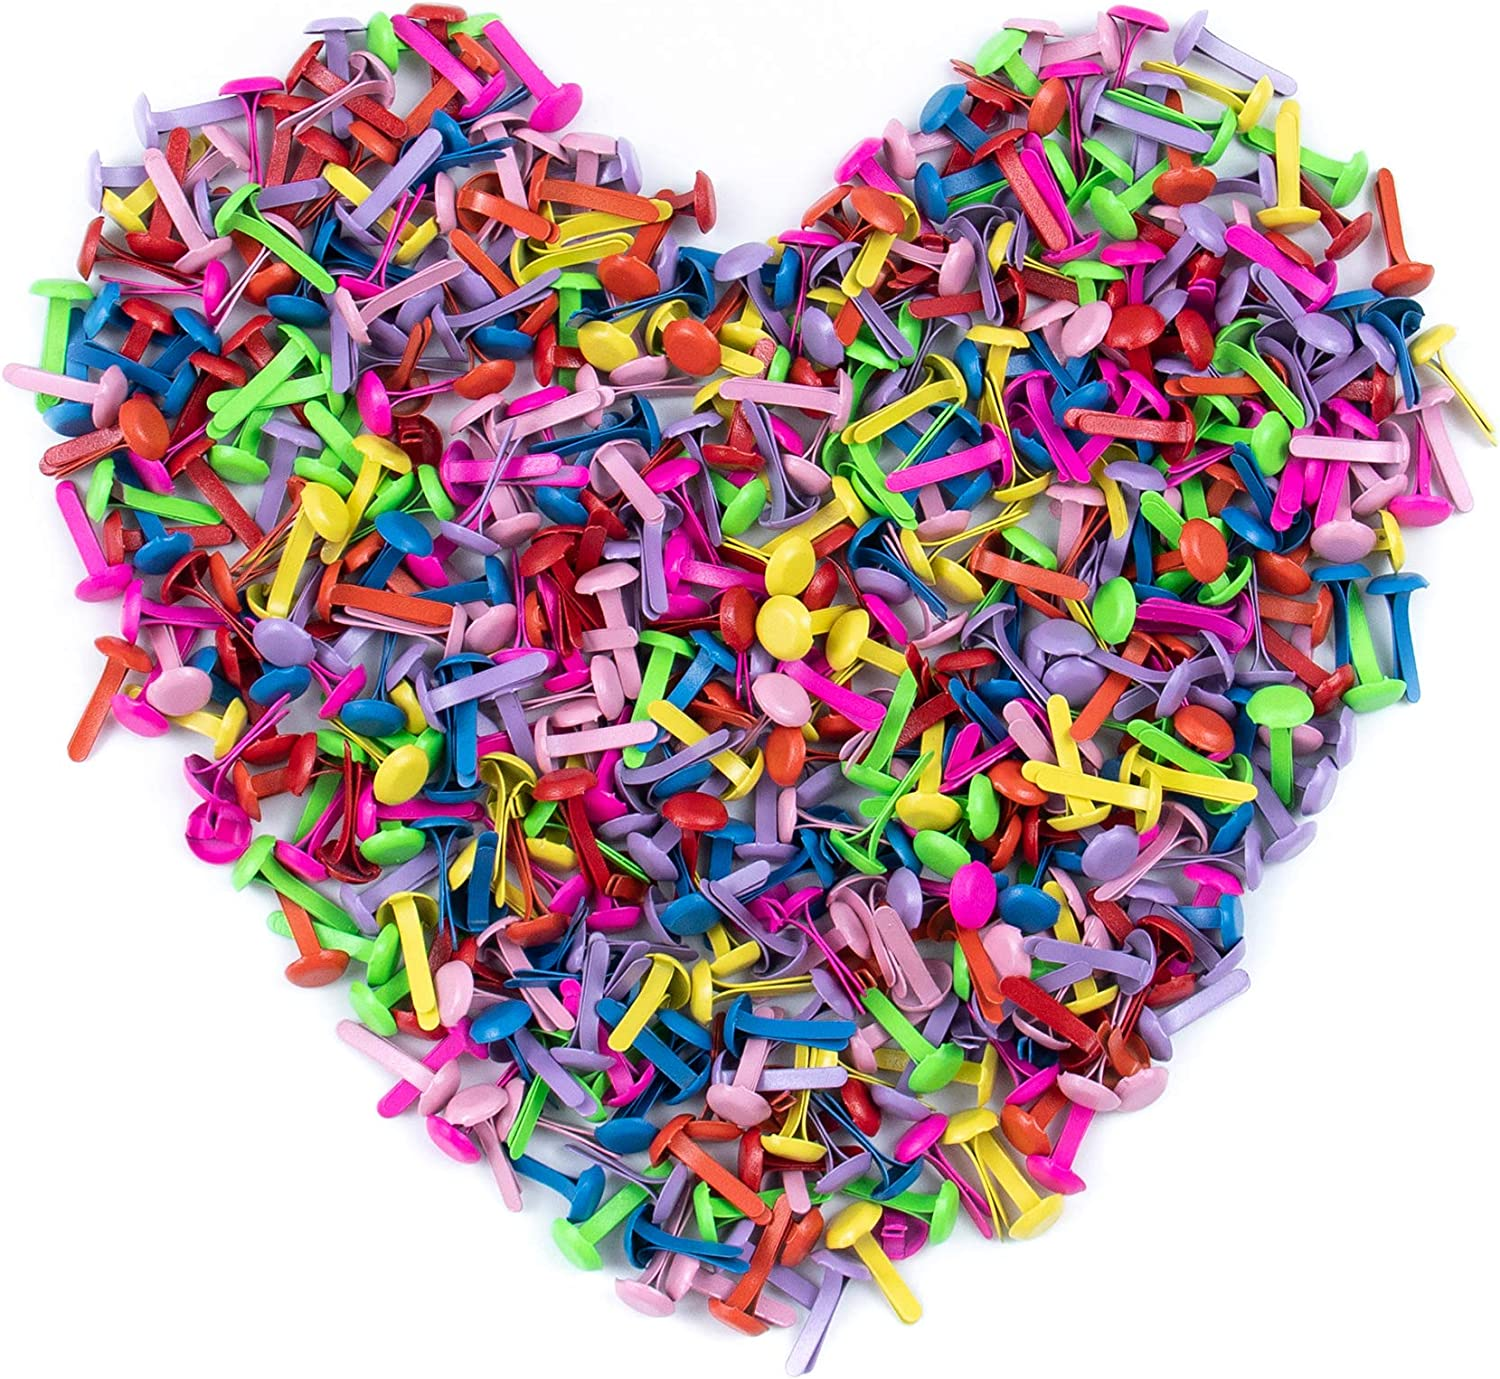 500 Pack Mini Brads Assorted Bright Color Small Round Metal Paper Fasteners Pastel Brads Split Pins for Scrapbooking Crafts DIY Paper 6 x 13mm AUEAR